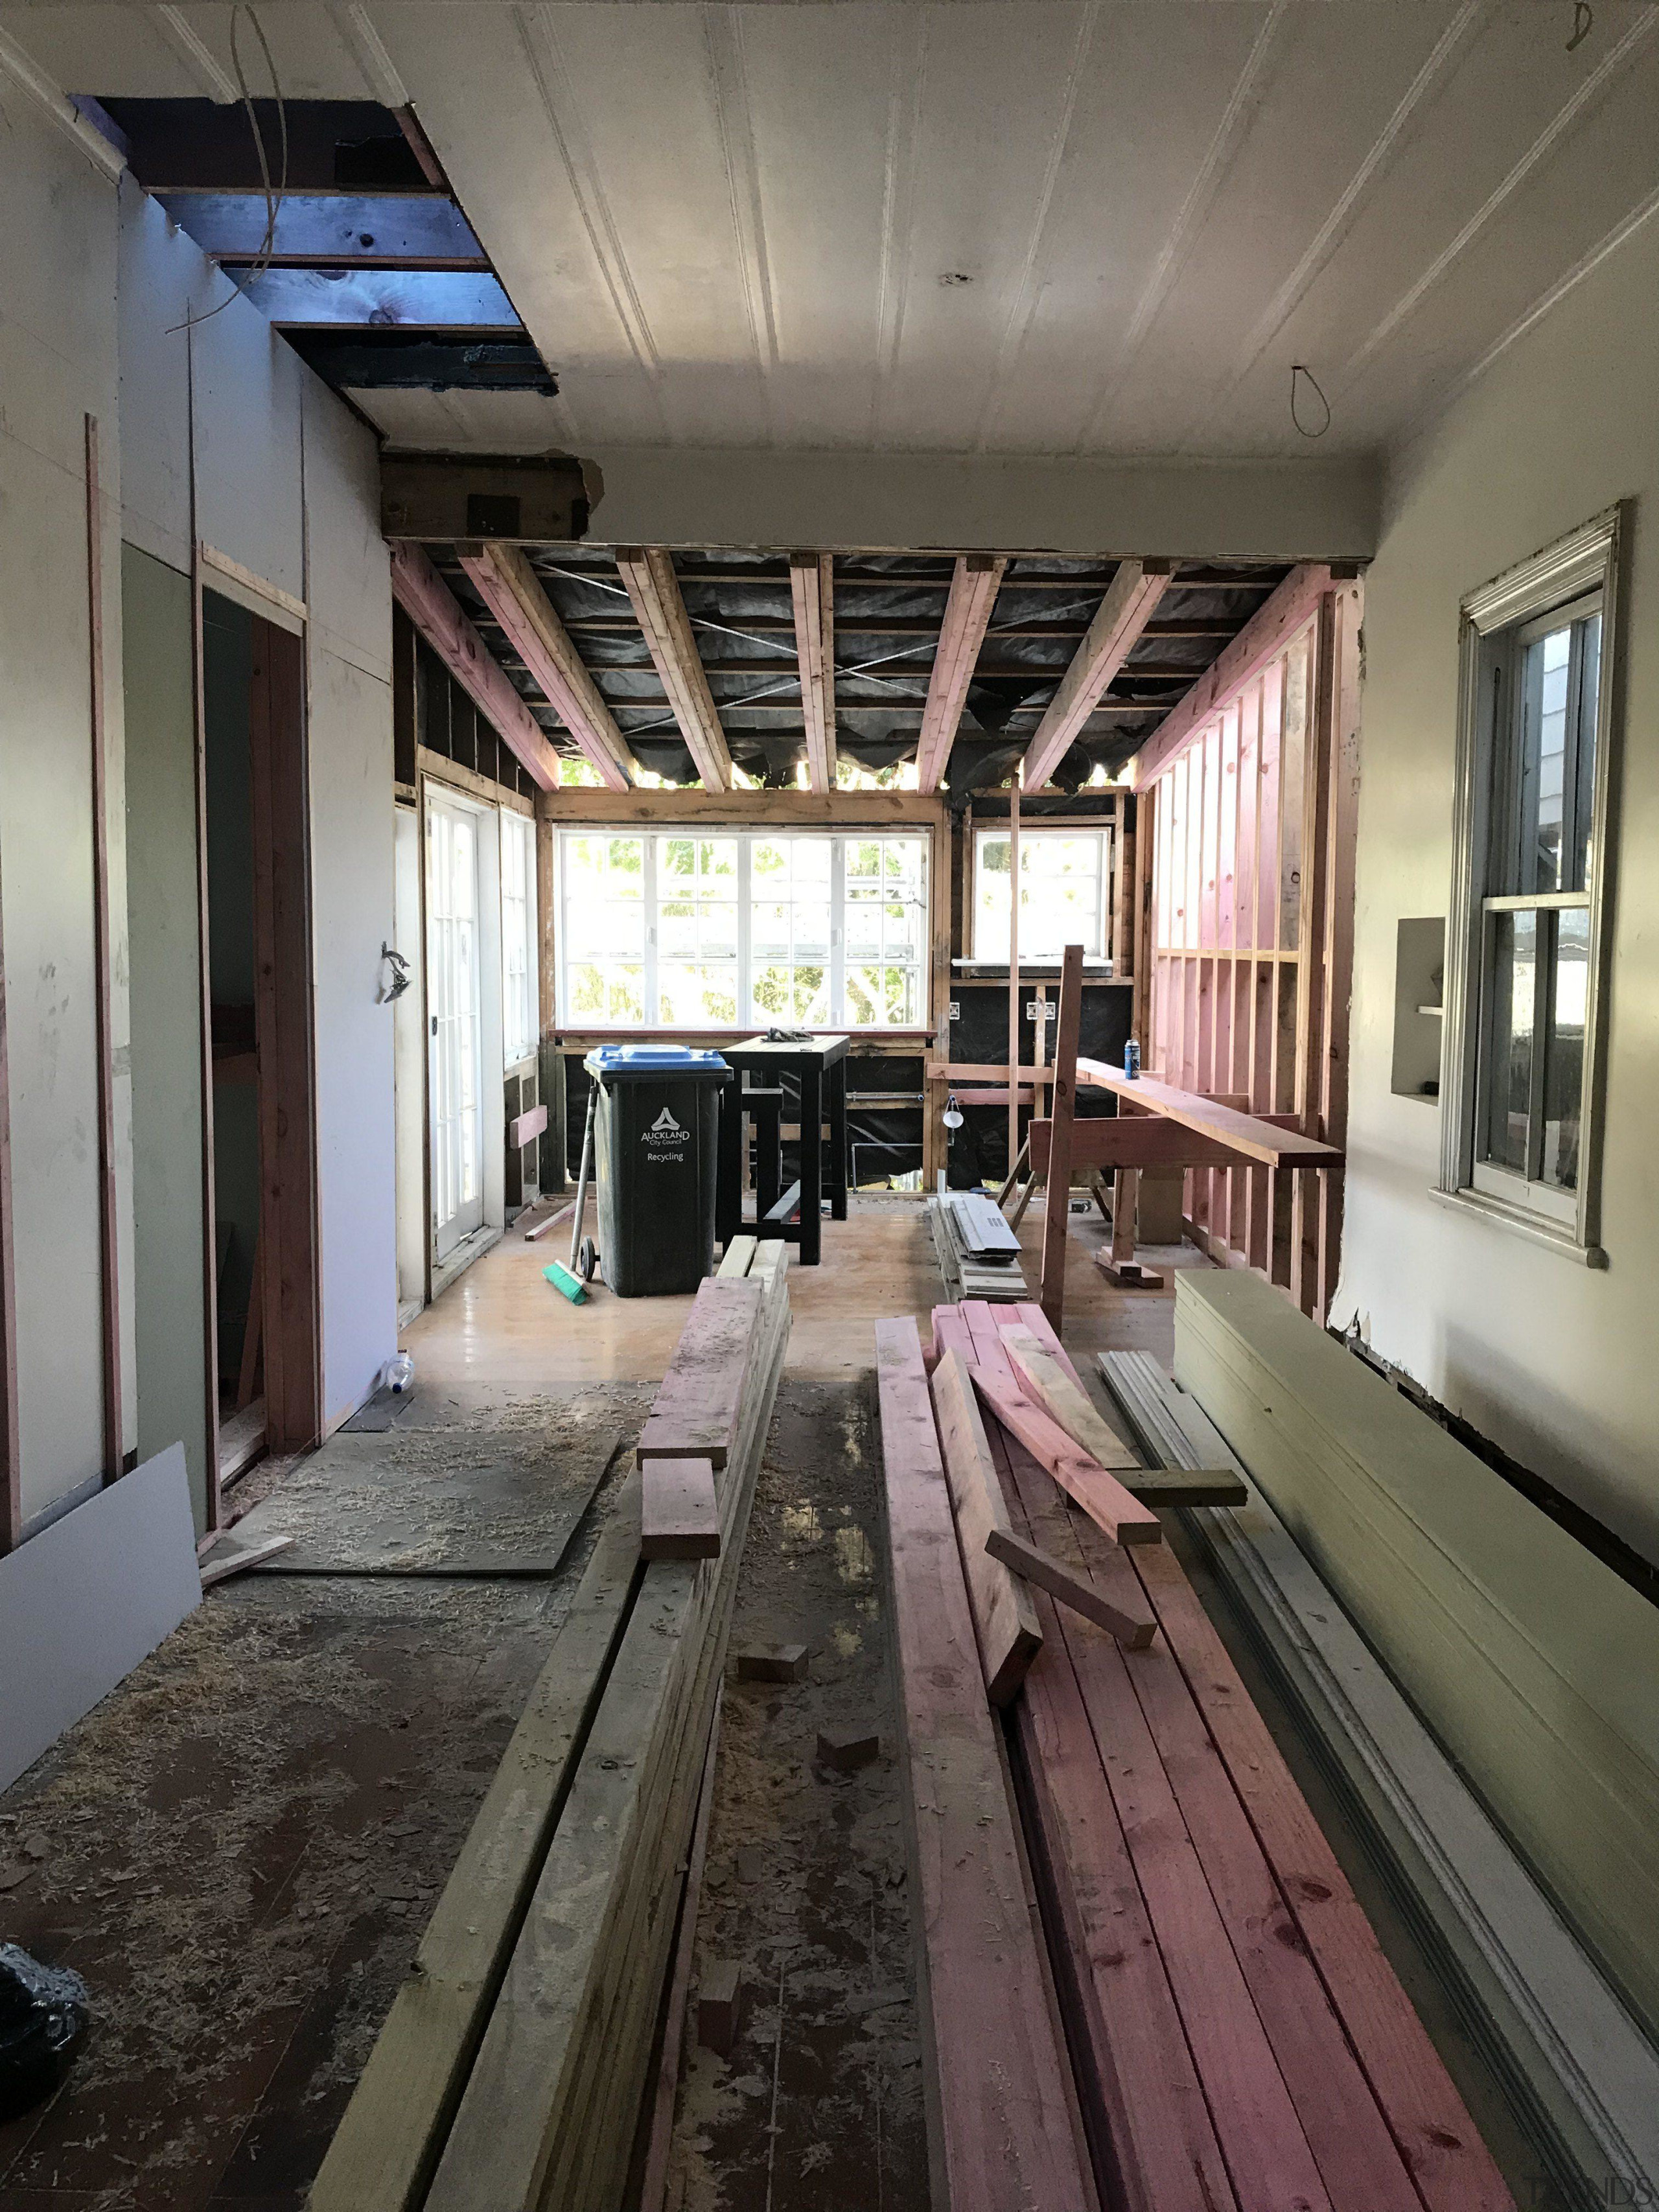 Diary of a renovation: Volume two - architecture architecture, building, ceiling, floor, room, wood, gray, black